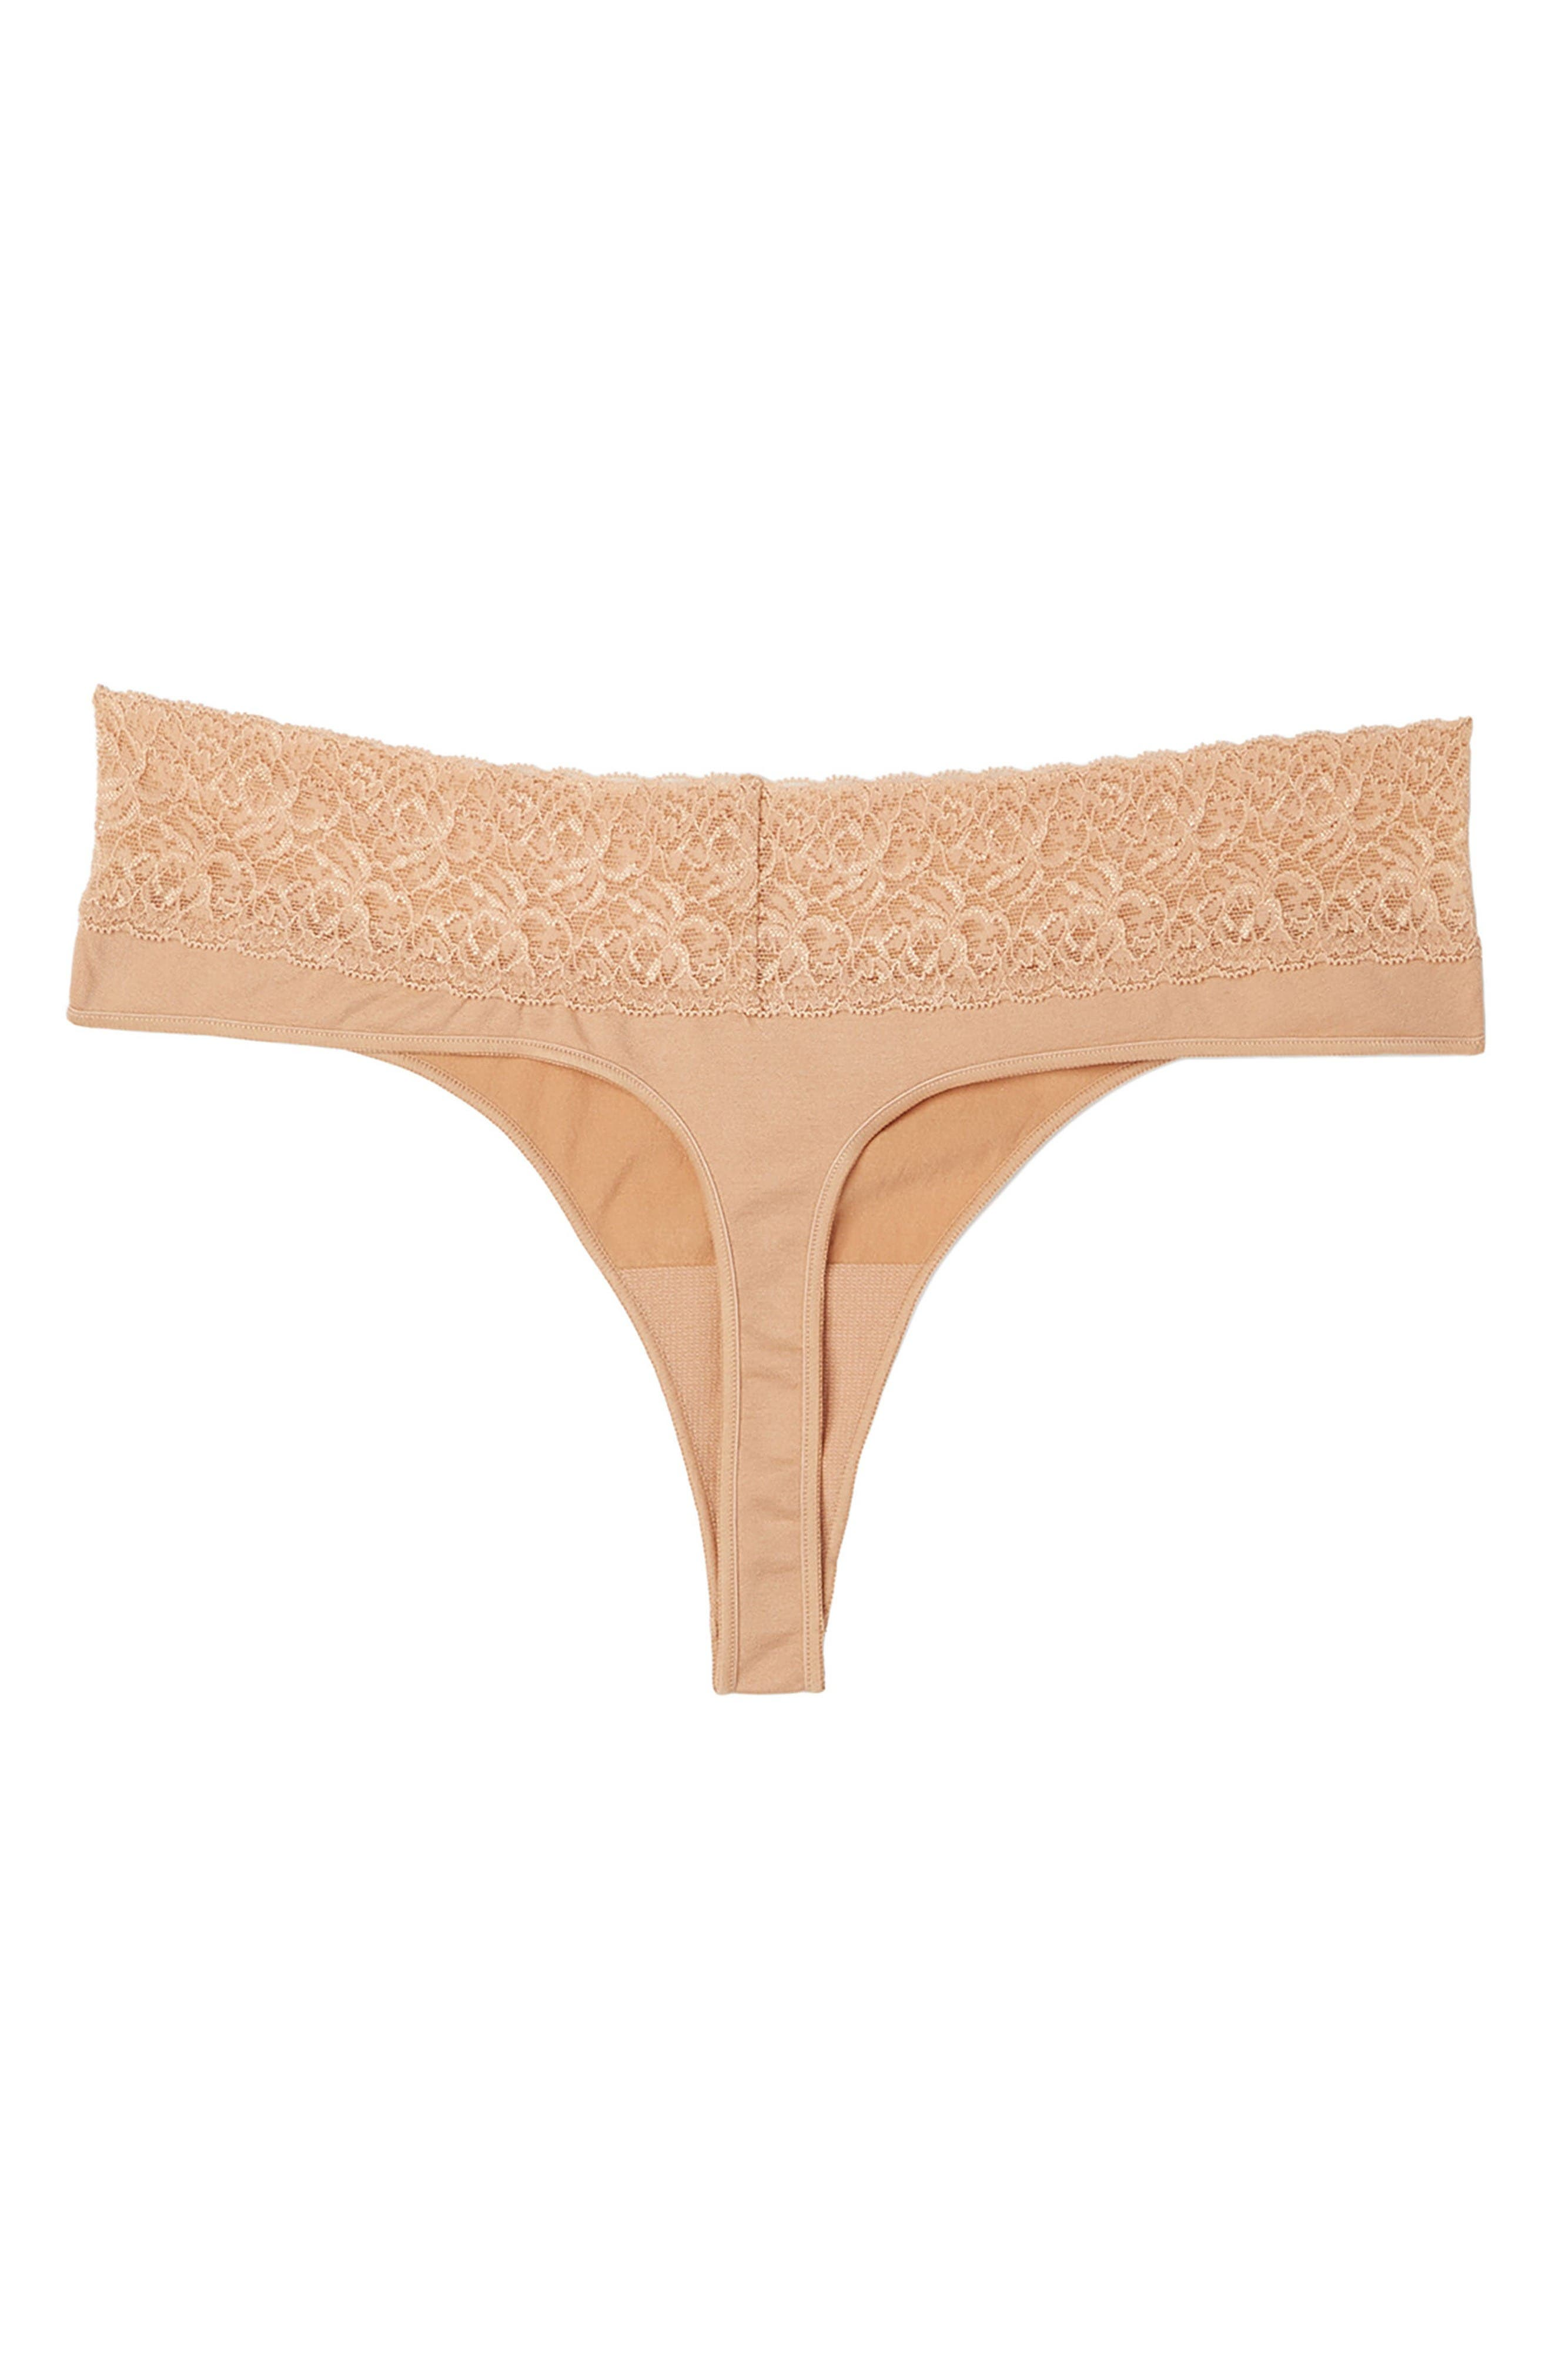 4-Pack Seamless Maternity/Postpartum Thong,                             Alternate thumbnail 2, color,                             Nude